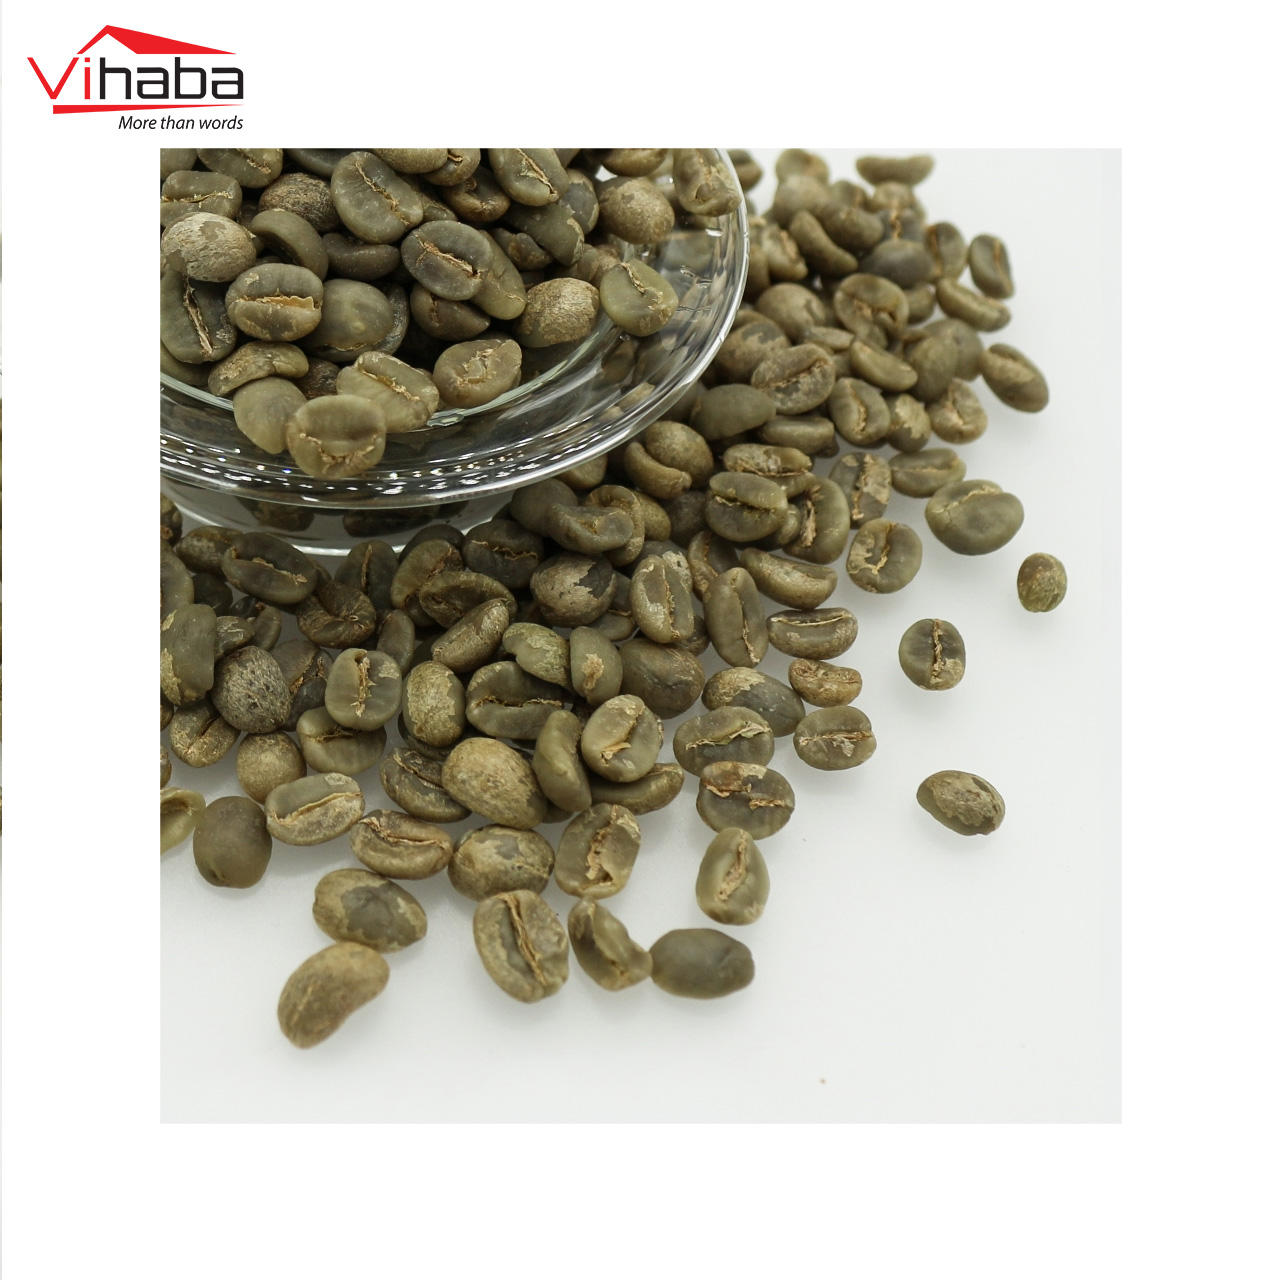 Manufacture Products Coffee Packaging Vietnam Export Products Whole Bean Coffee Robusta Green Coffee Beans